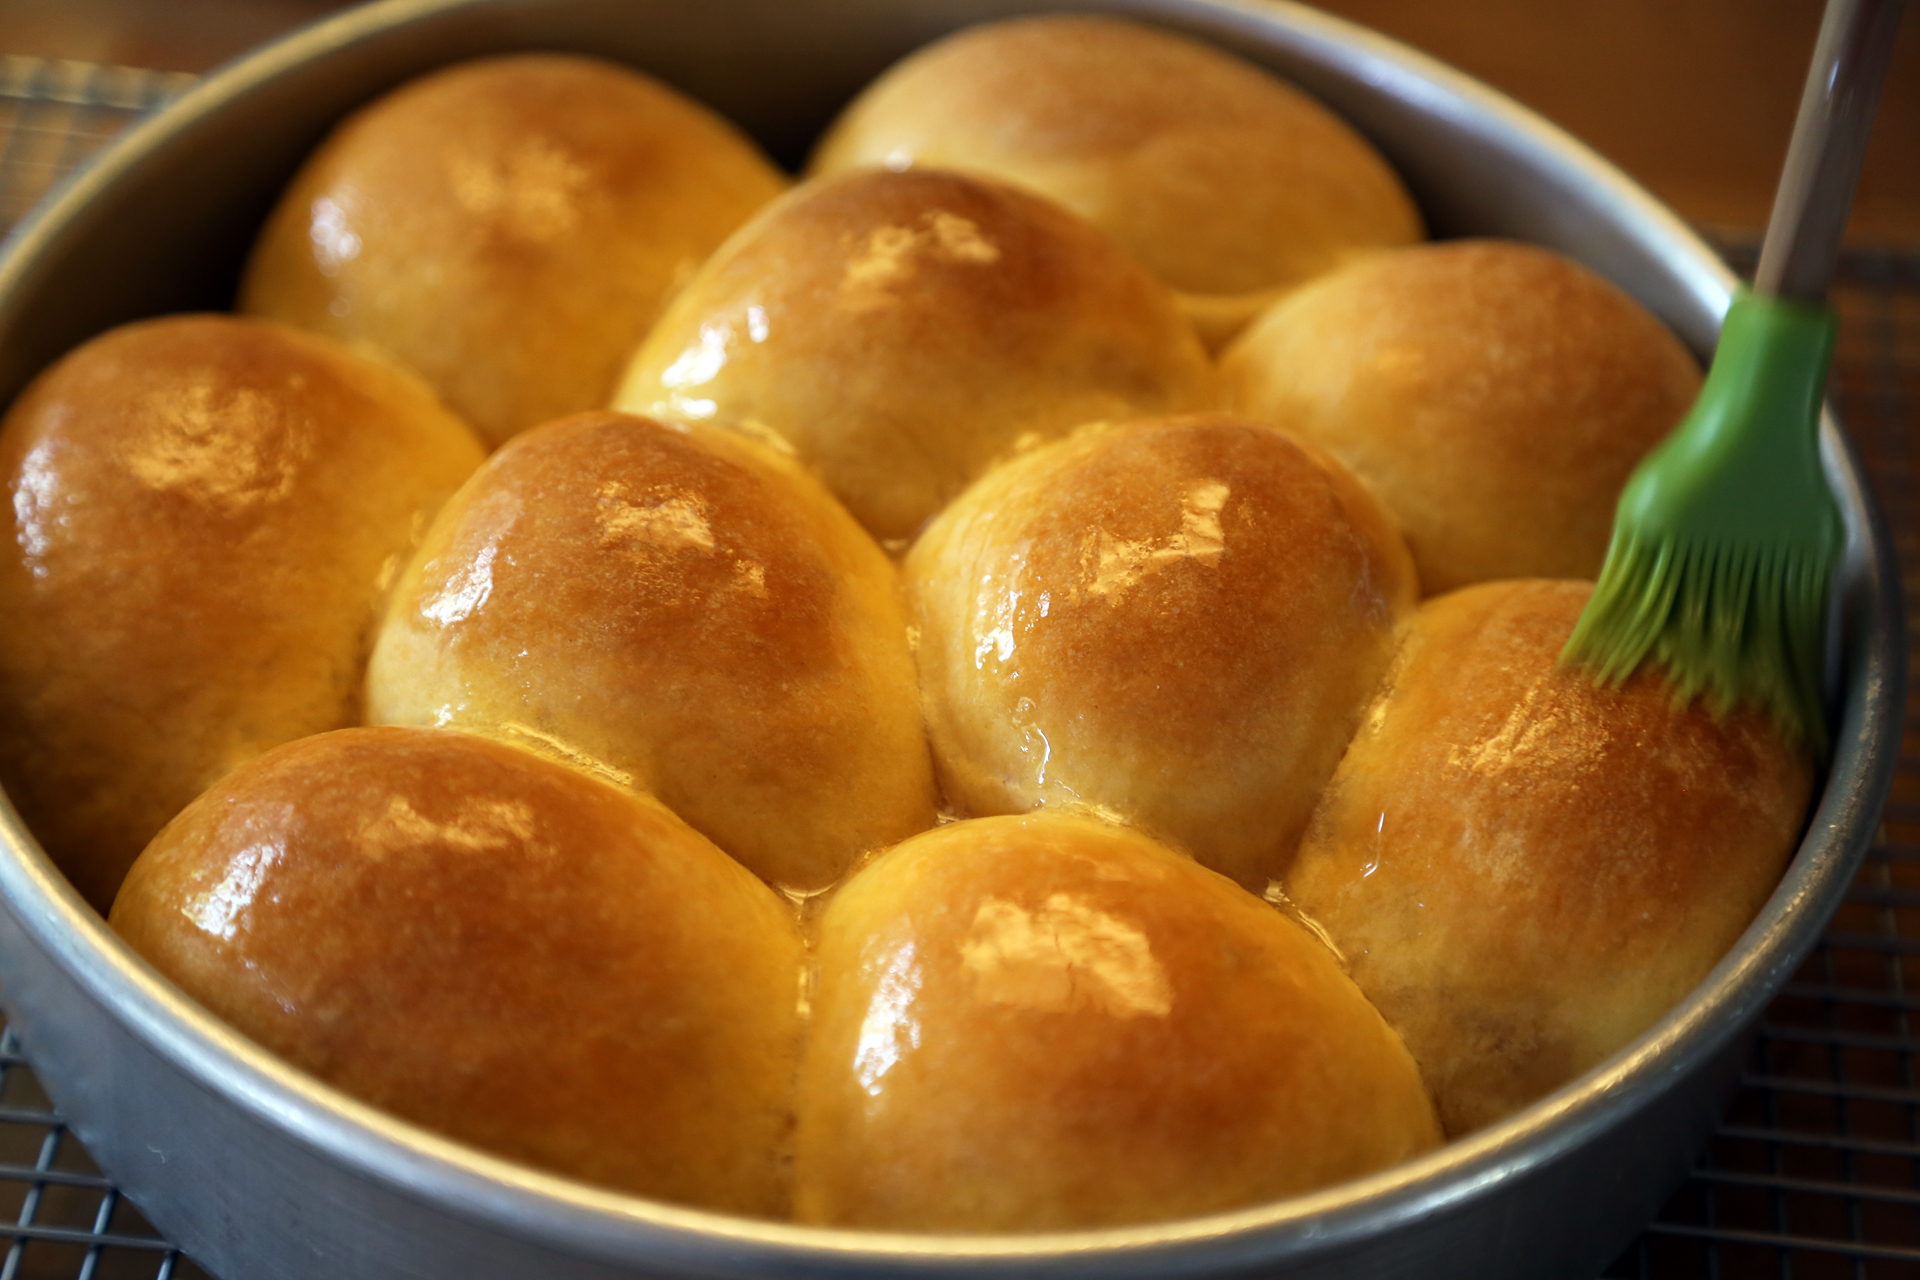 Homemade thanksgiving soft and buttery sweet potato dinner rolls homemade thanksgiving soft and buttery sweet potato dinner rolls thanksgiving recipes bay area bites kqed food forumfinder Images